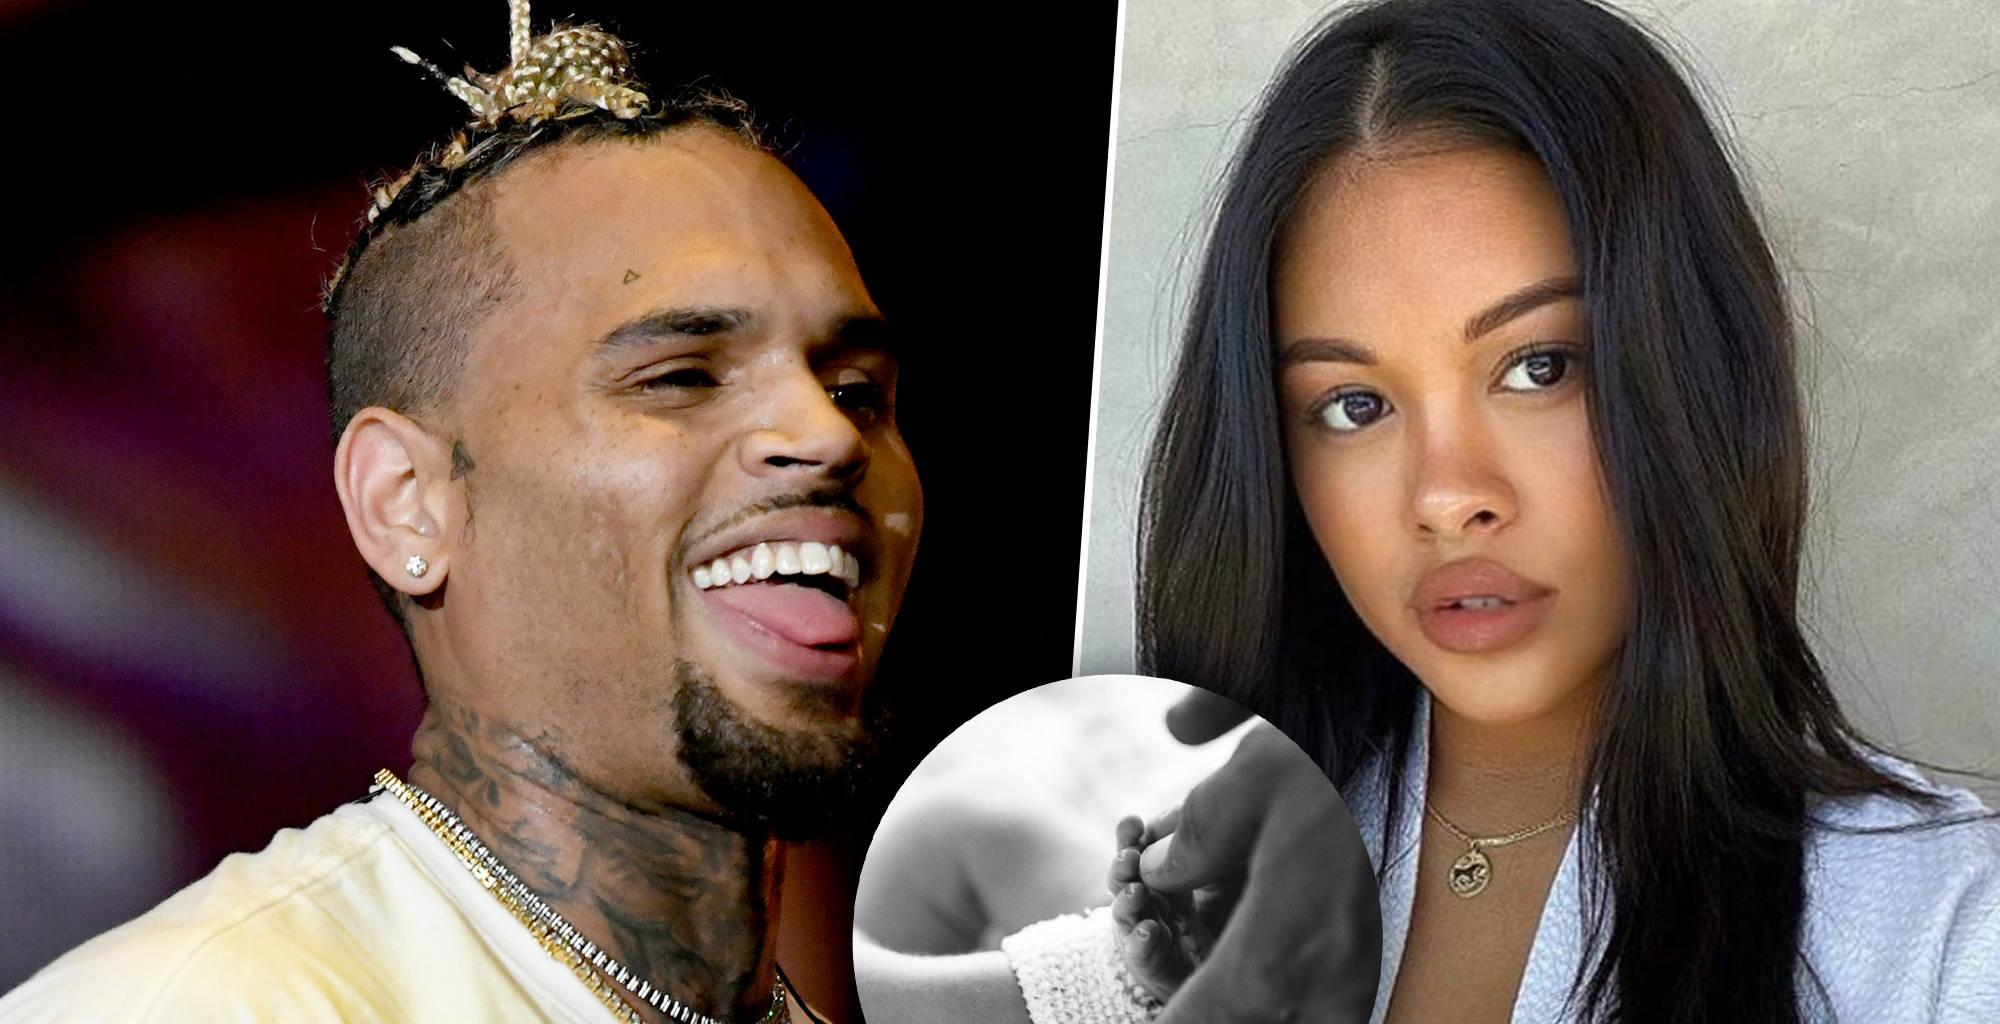 Chris Brown Finally Shows Off His Newborn And Confirms His Name - Check Out The First Pic!